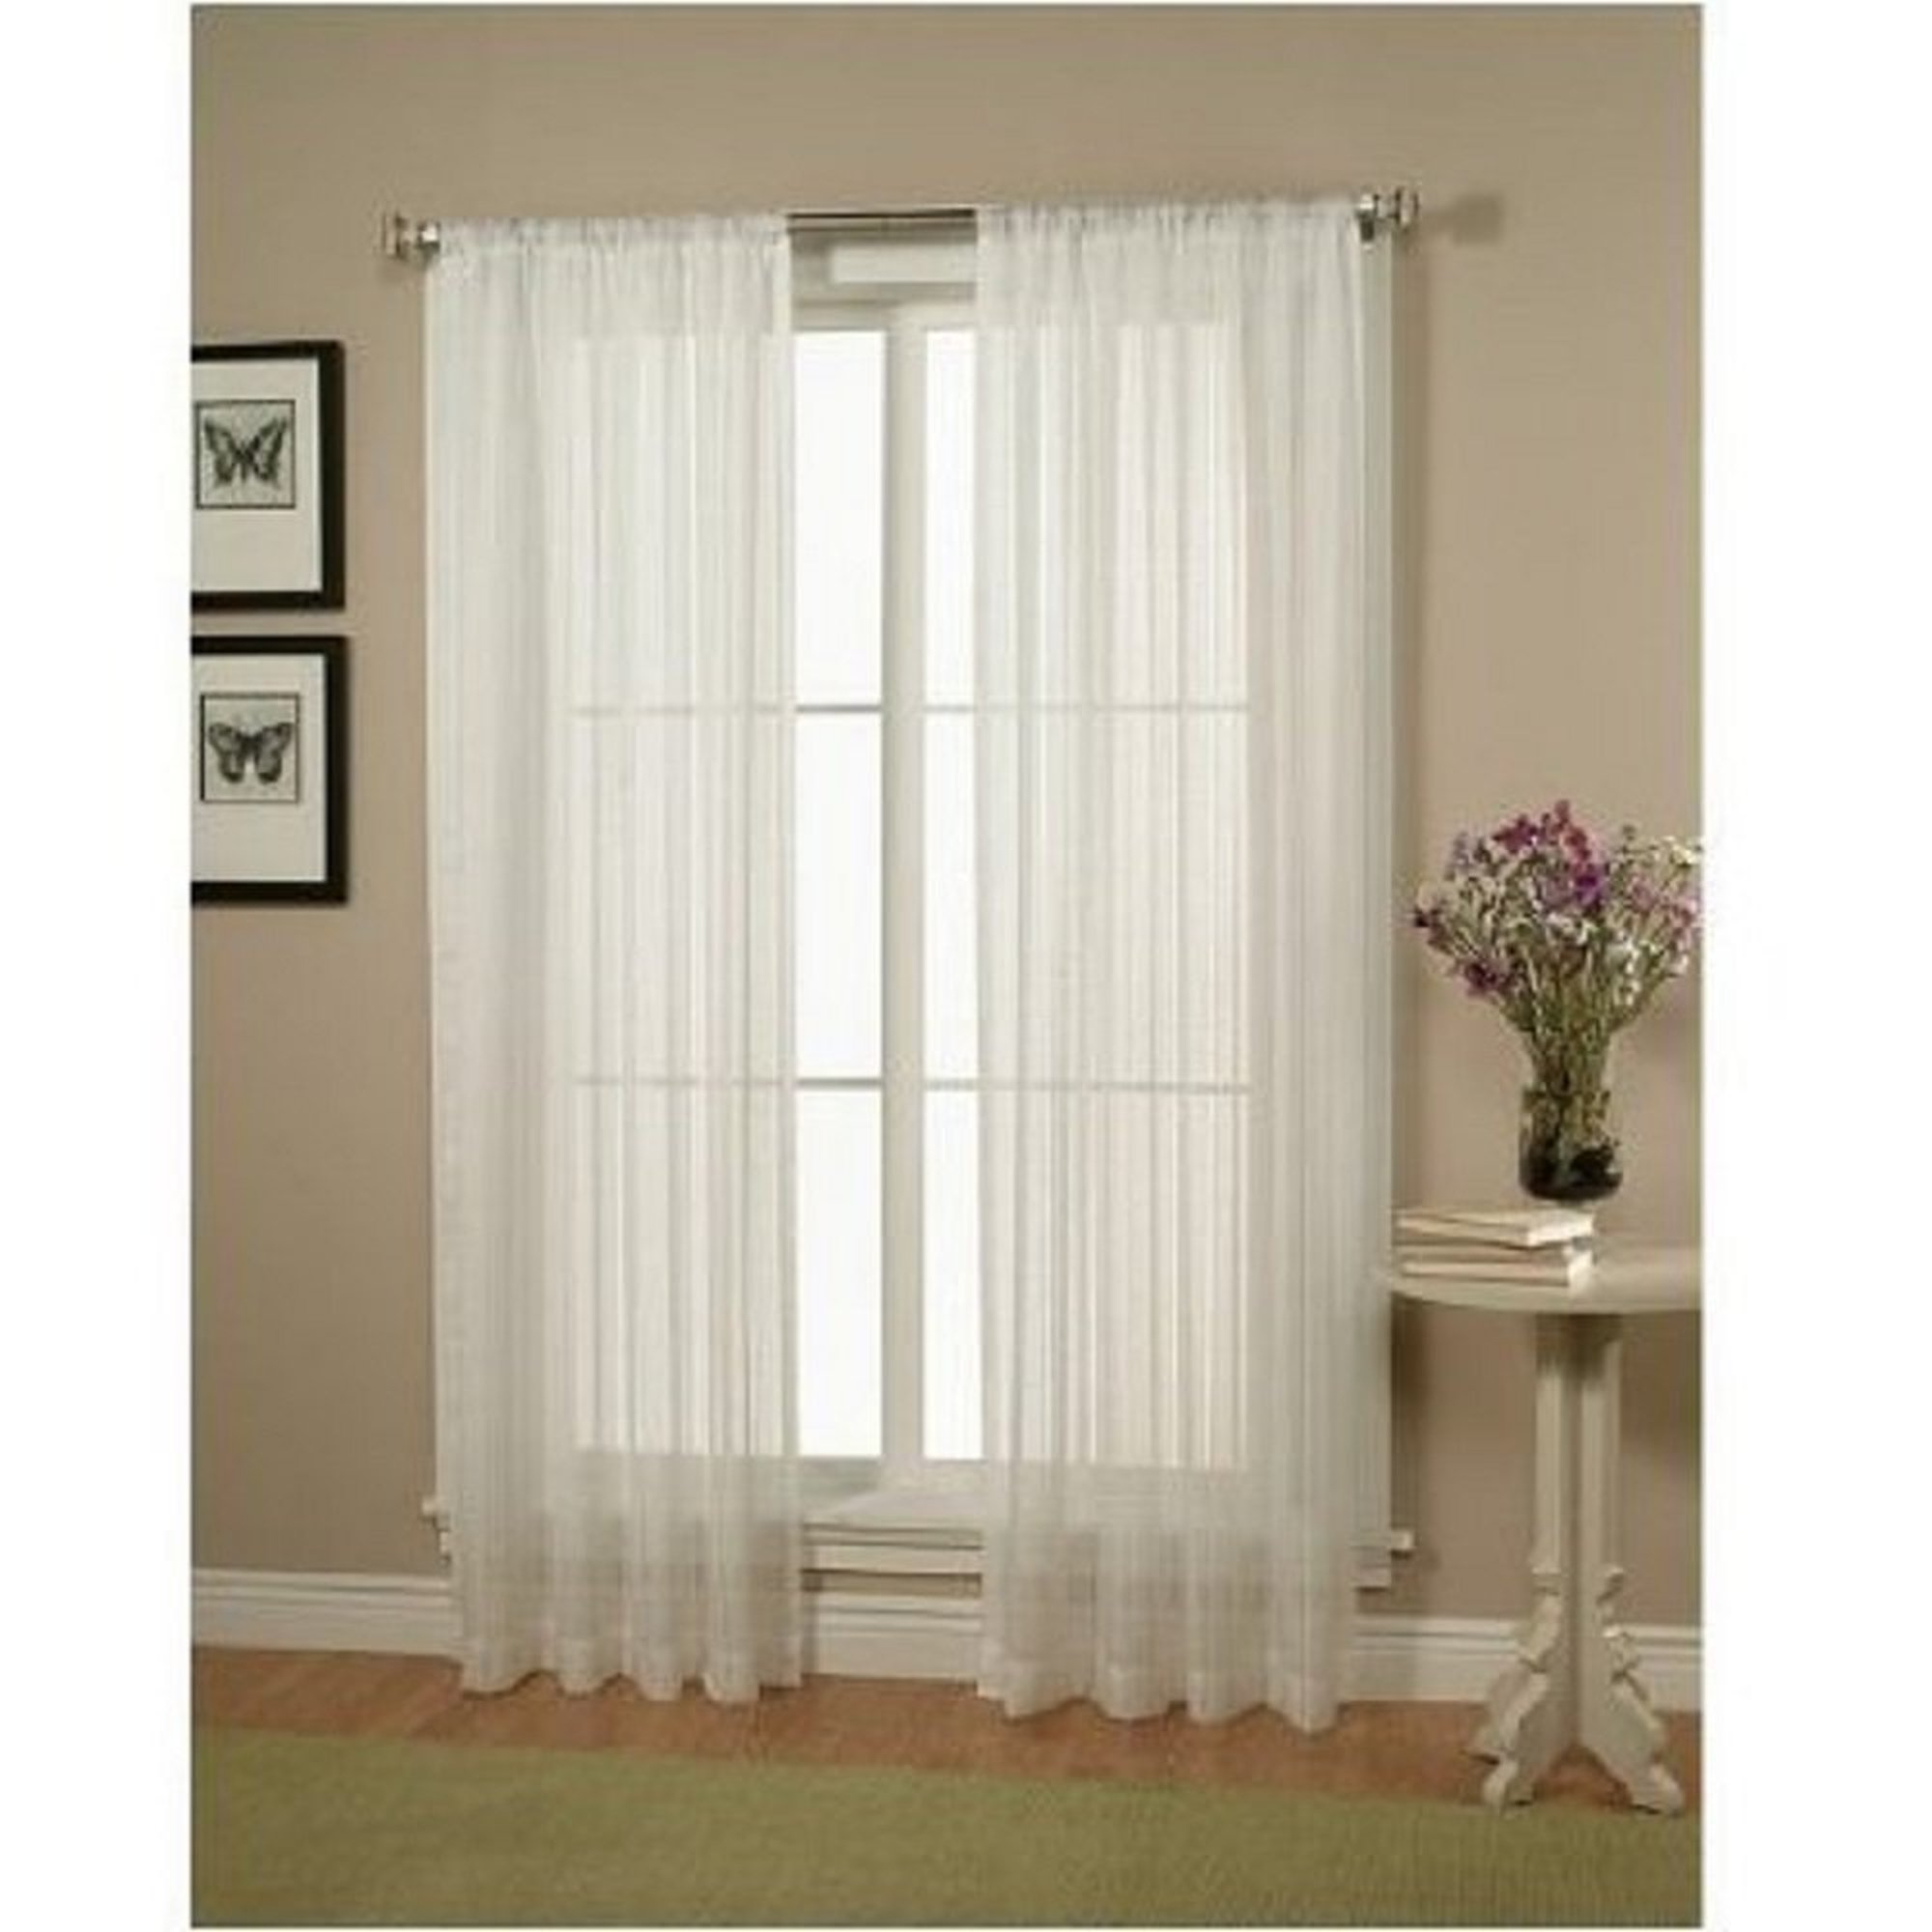 Current Details About Elegant Comfort 2 Piece Solid White Sheer Window Curtains/drape/panels/treatment In Elegant Comfort Window Sheer Curtain Panel Pairs (View 7 of 20)